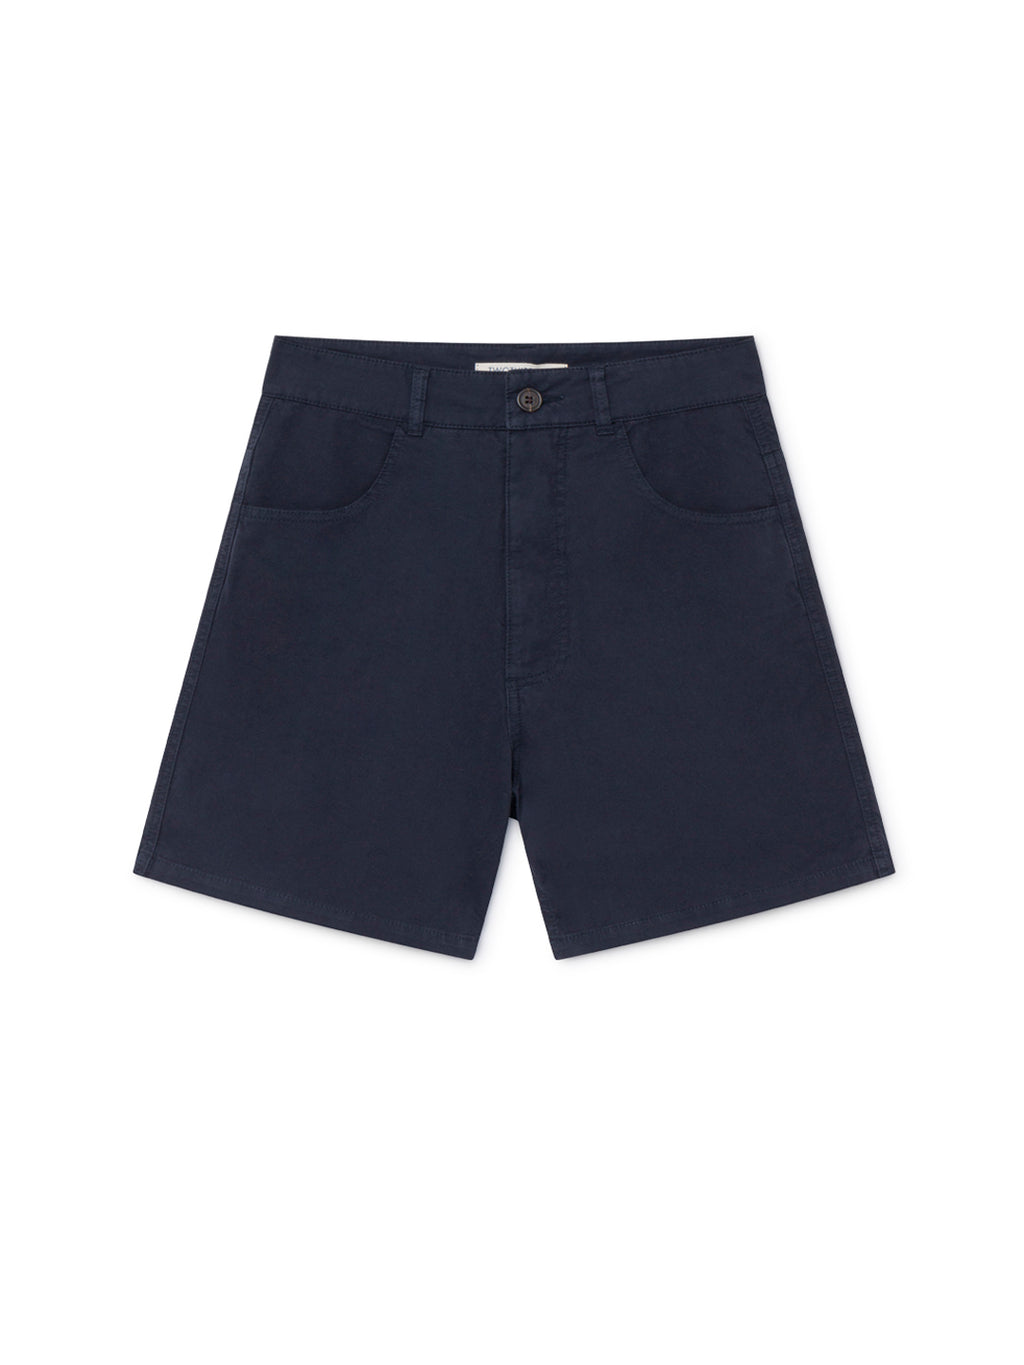 TWOTHIRDS Womens Shorts: Yonaguni - Navy front